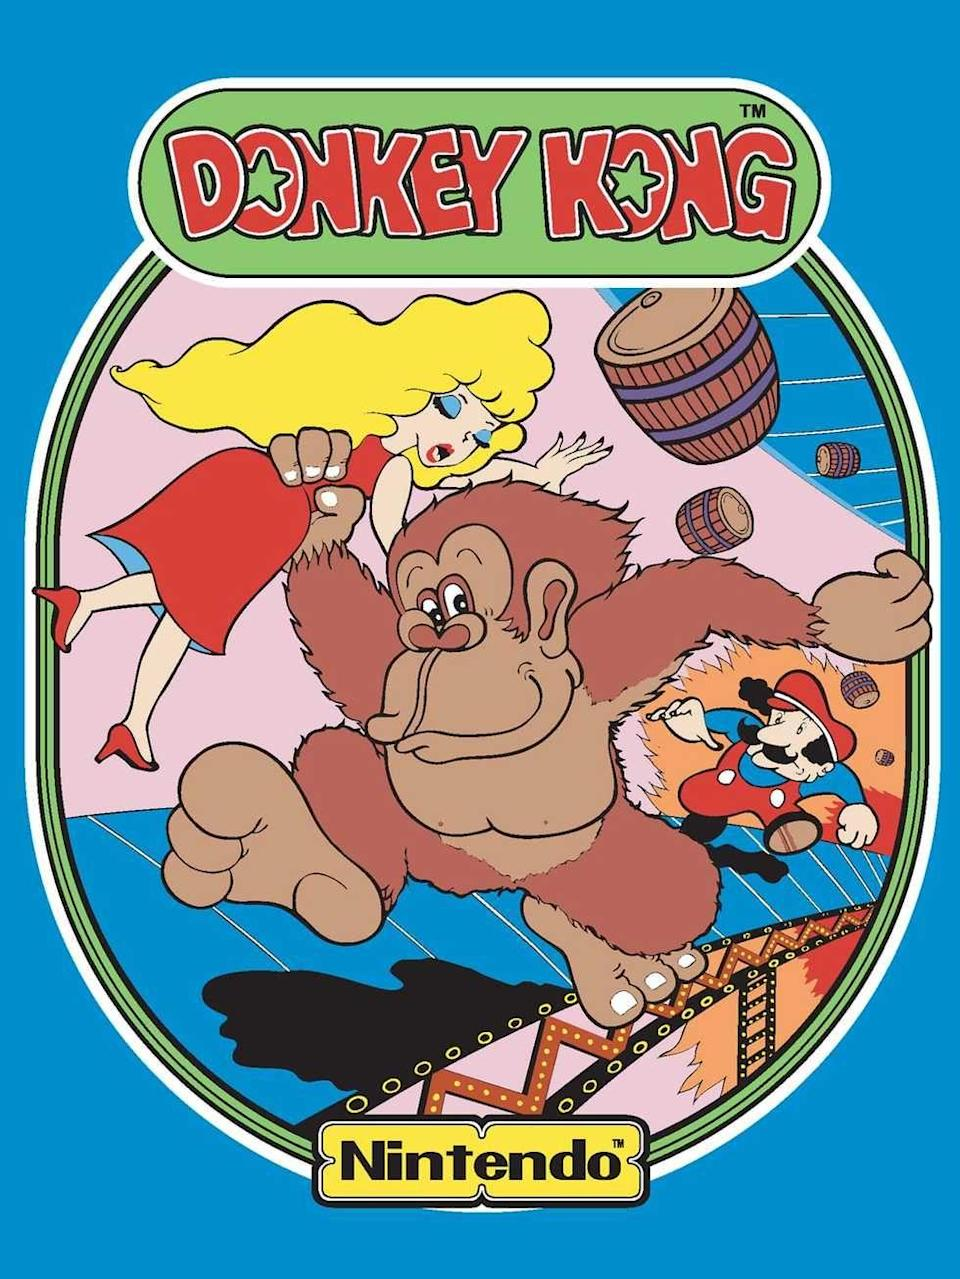 "<p>The year 1981 was such an explosion of arcade classics that picking one almost feels criminal, but no game would introduce such lasting characters as <em>Donkey Kong</em>. The titular enemy Donkey Kong, along with an unnamed carpenter (not plumber), would create Nintendo's lasting cast of characters. The game <em>Donkey Kong</em> was also one of the world's first platformers and a game where <a href=""http://donkeykongforum.com/index.php?topic=2056.0"" rel=""nofollow noopener"" target=""_blank"" data-ylk=""slk:high score records"" class=""link rapid-noclick-resp"">high score records</a> are still being broken to this day.</p><p><a class=""link rapid-noclick-resp"" href=""https://www.amazon.com/Nintendo-Entertainment-System-NES-Classic/dp/B01IFJBQ1E/?tag=syn-yahoo-20&ascsubtag=%5Bartid%7C10054.g.2871%5Bsrc%7Cyahoo-us"" rel=""nofollow noopener"" target=""_blank"" data-ylk=""slk:PLAY NOW"">PLAY NOW</a></p>"